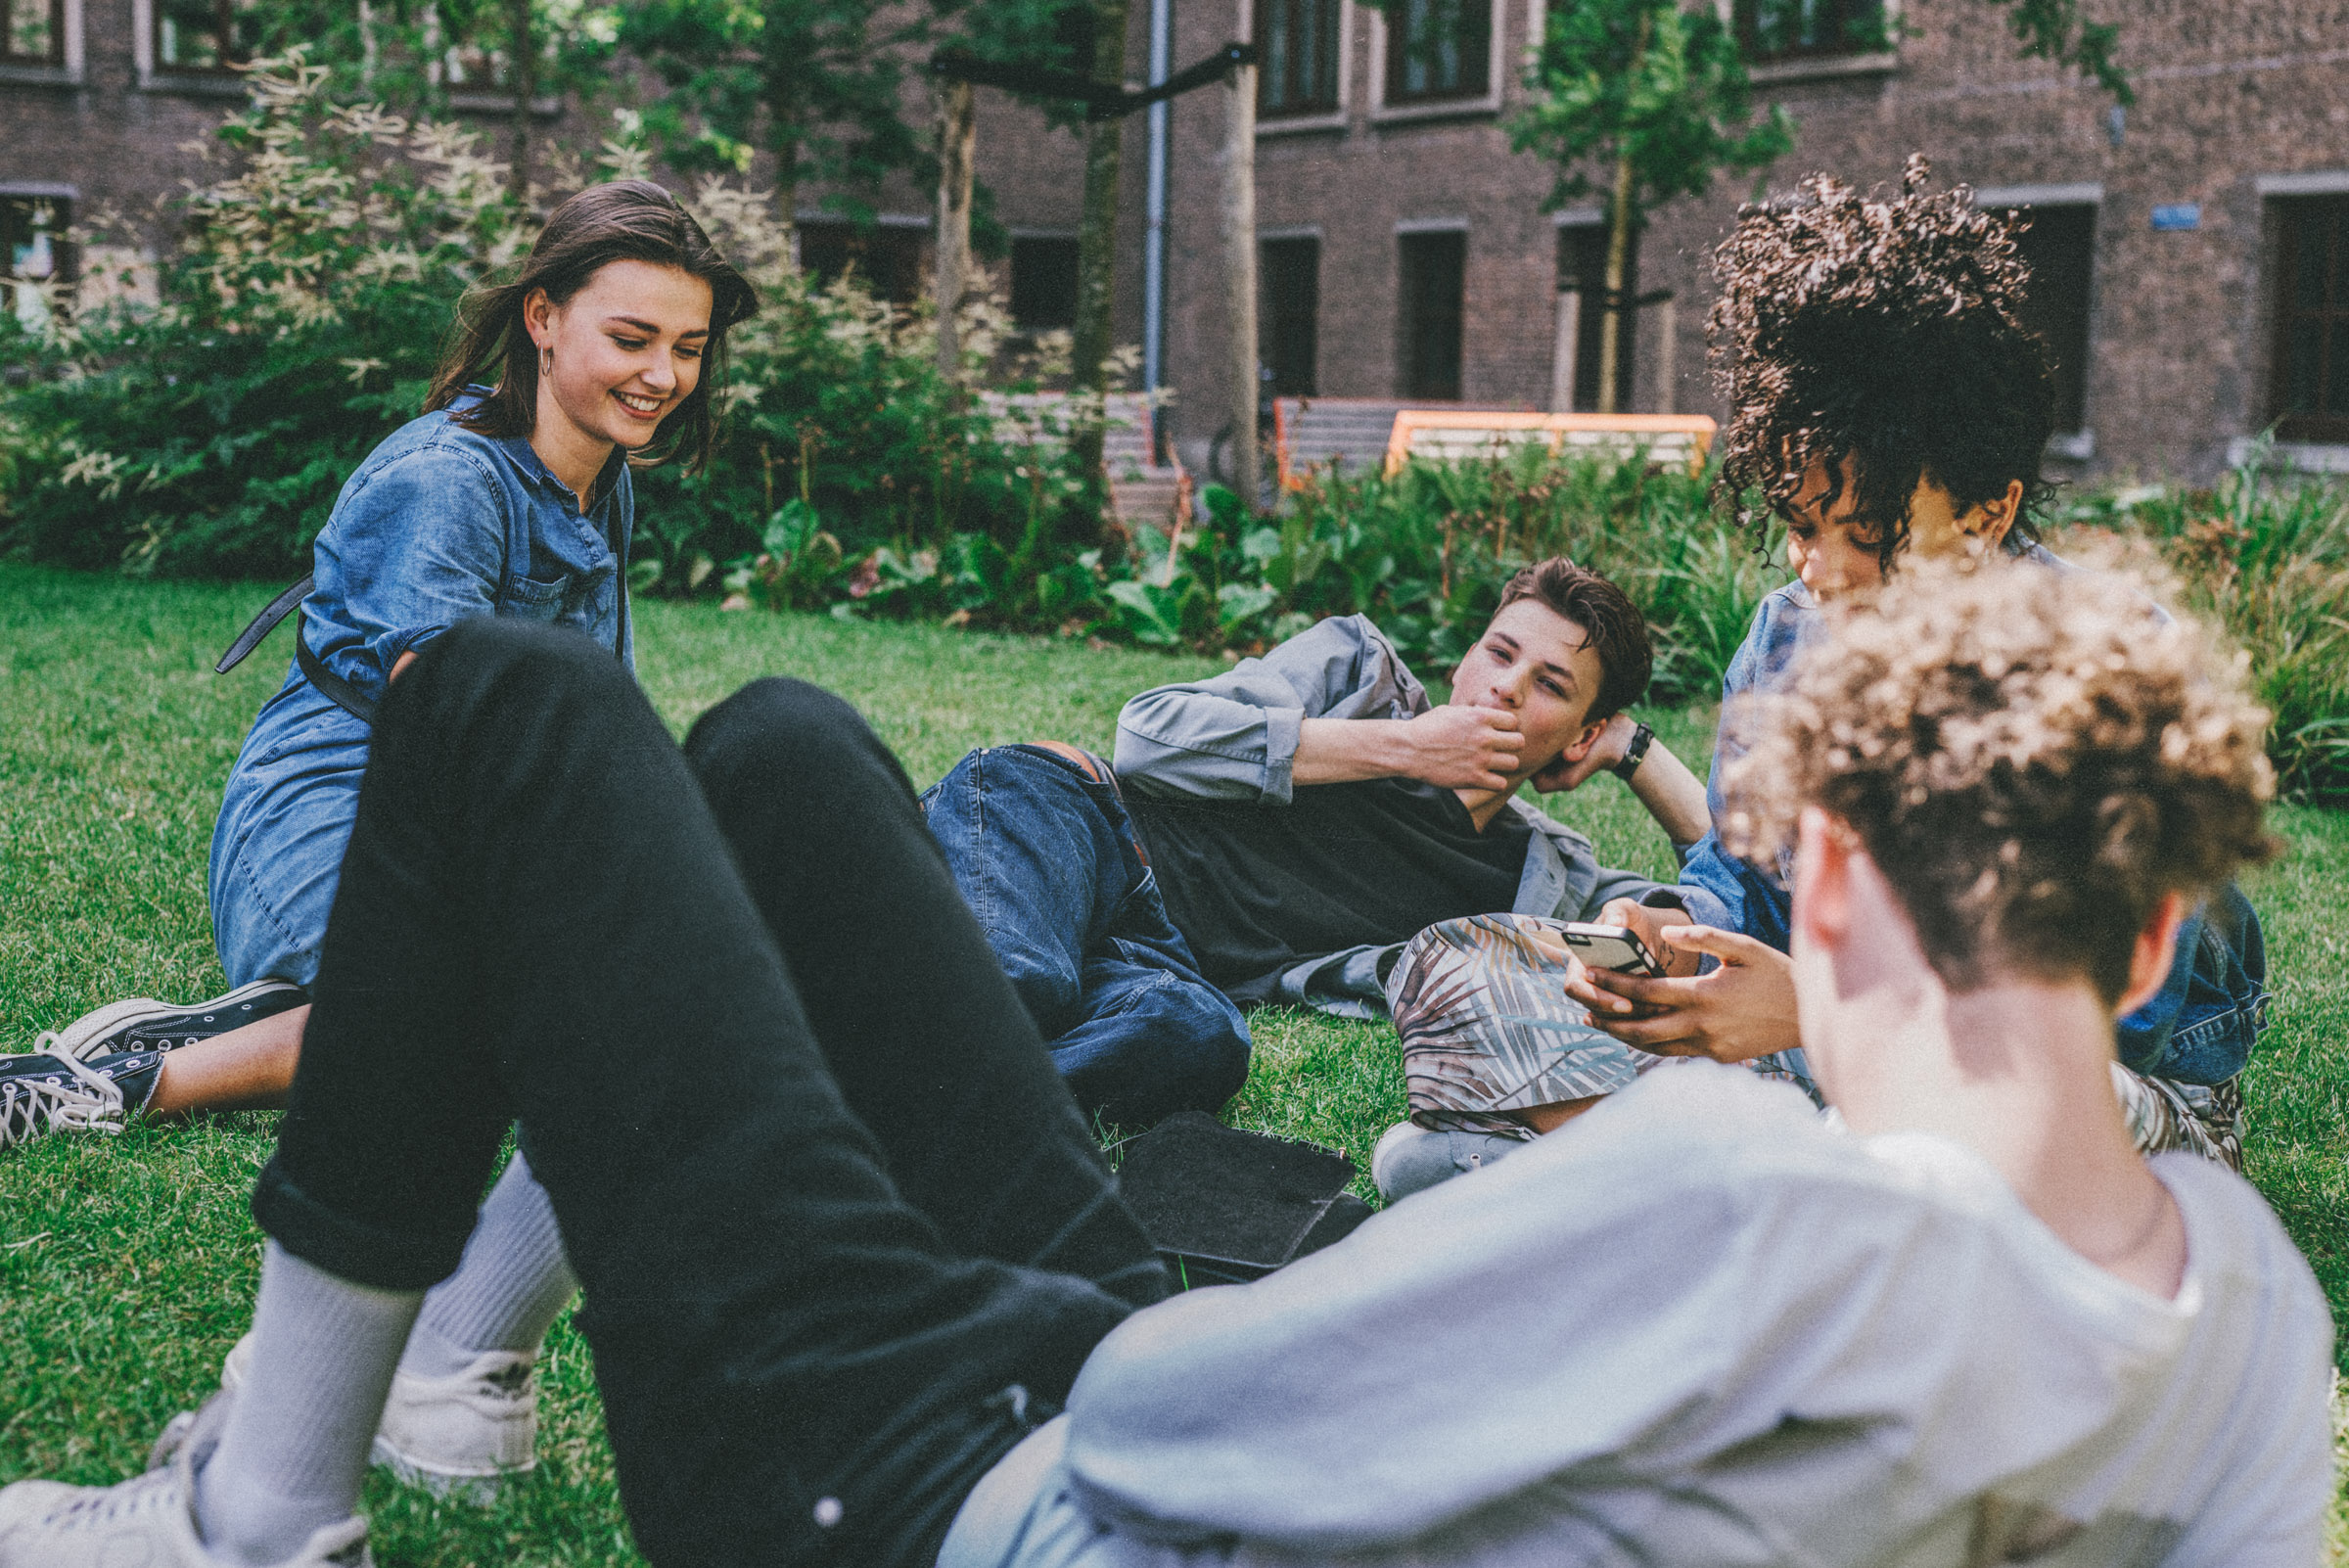 Young people hanging out